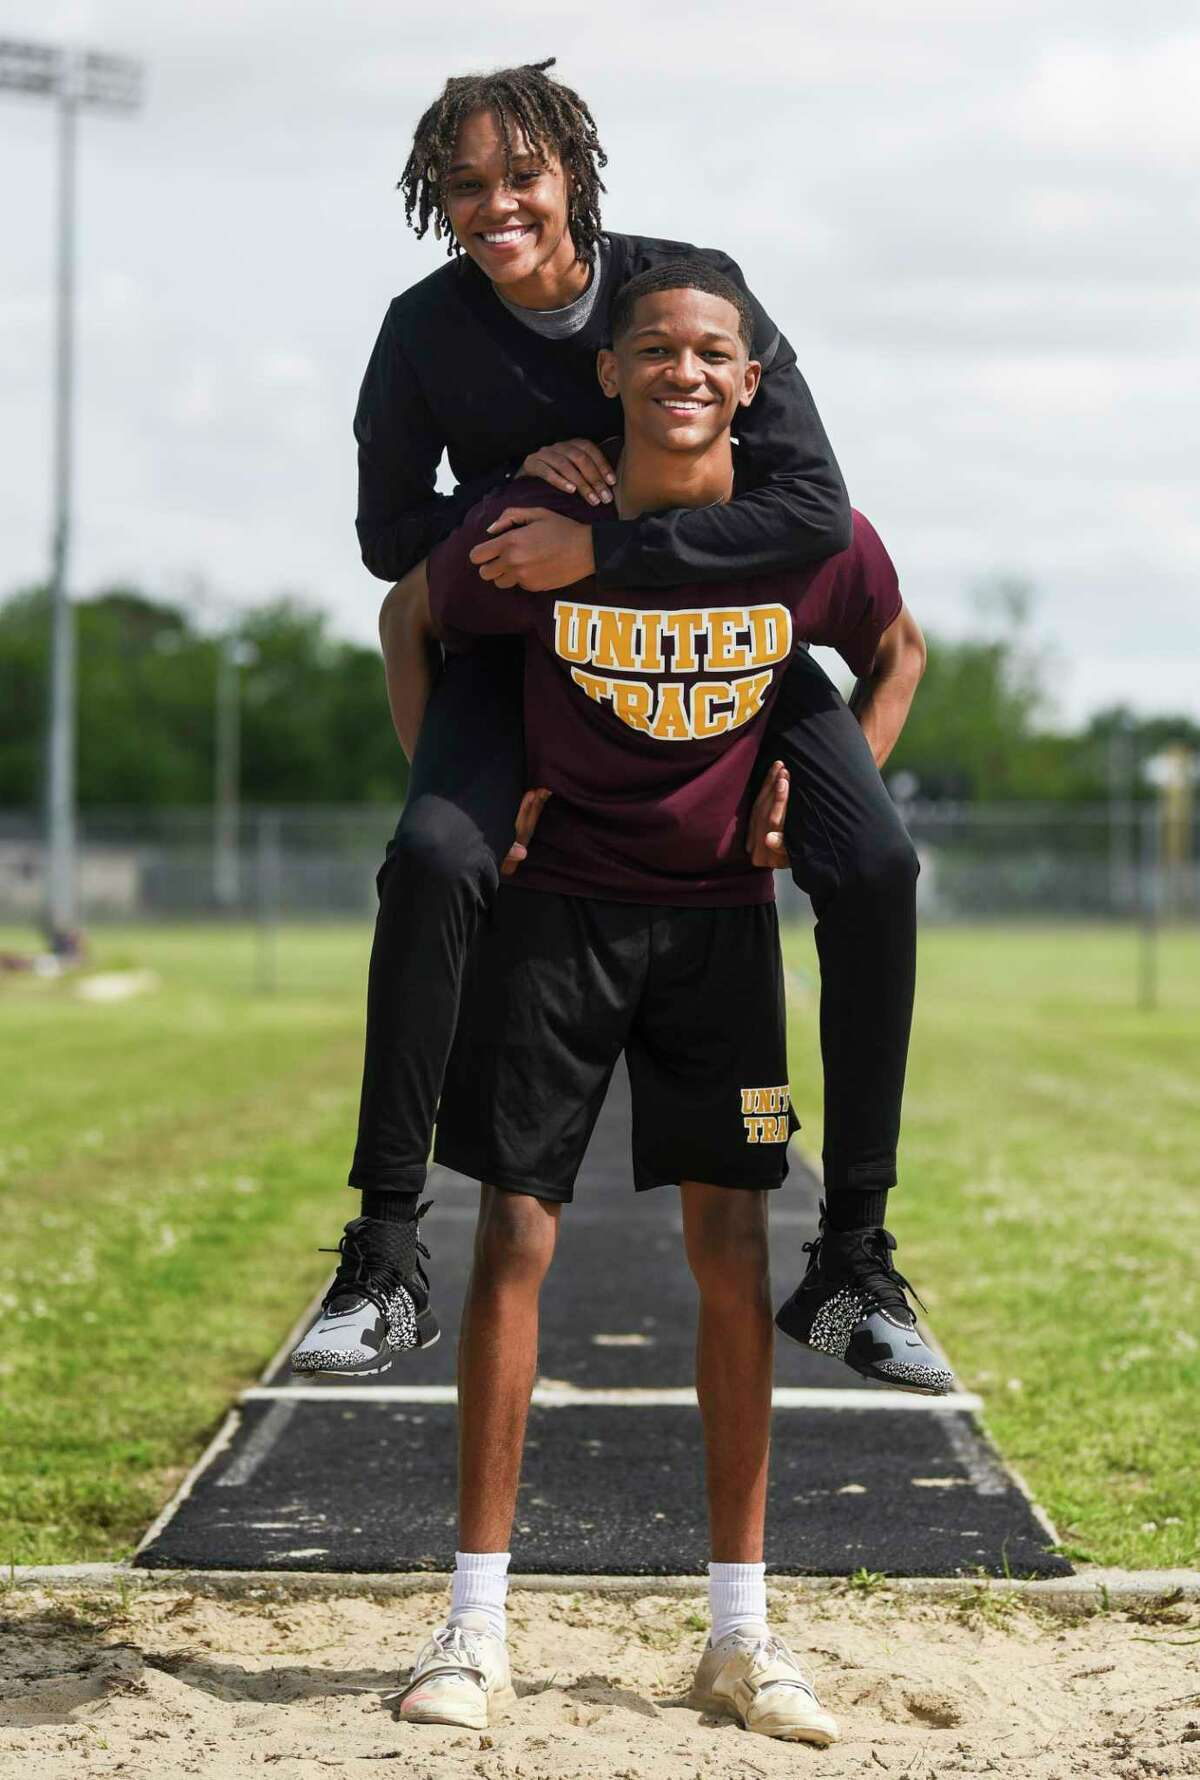 District 21-6A triple jump champion Drezden Brannon poses with his sister A'Lexus at Beaumont United's track on Tuesday. A'Lexus is a three-time consecutive UIL state championship and is currently coaching Drezden who hopes to follow in her footsteps at Beaumont United. Photo taken on Tuesday, 04/16/19. Ryan Welch/The Enterprise